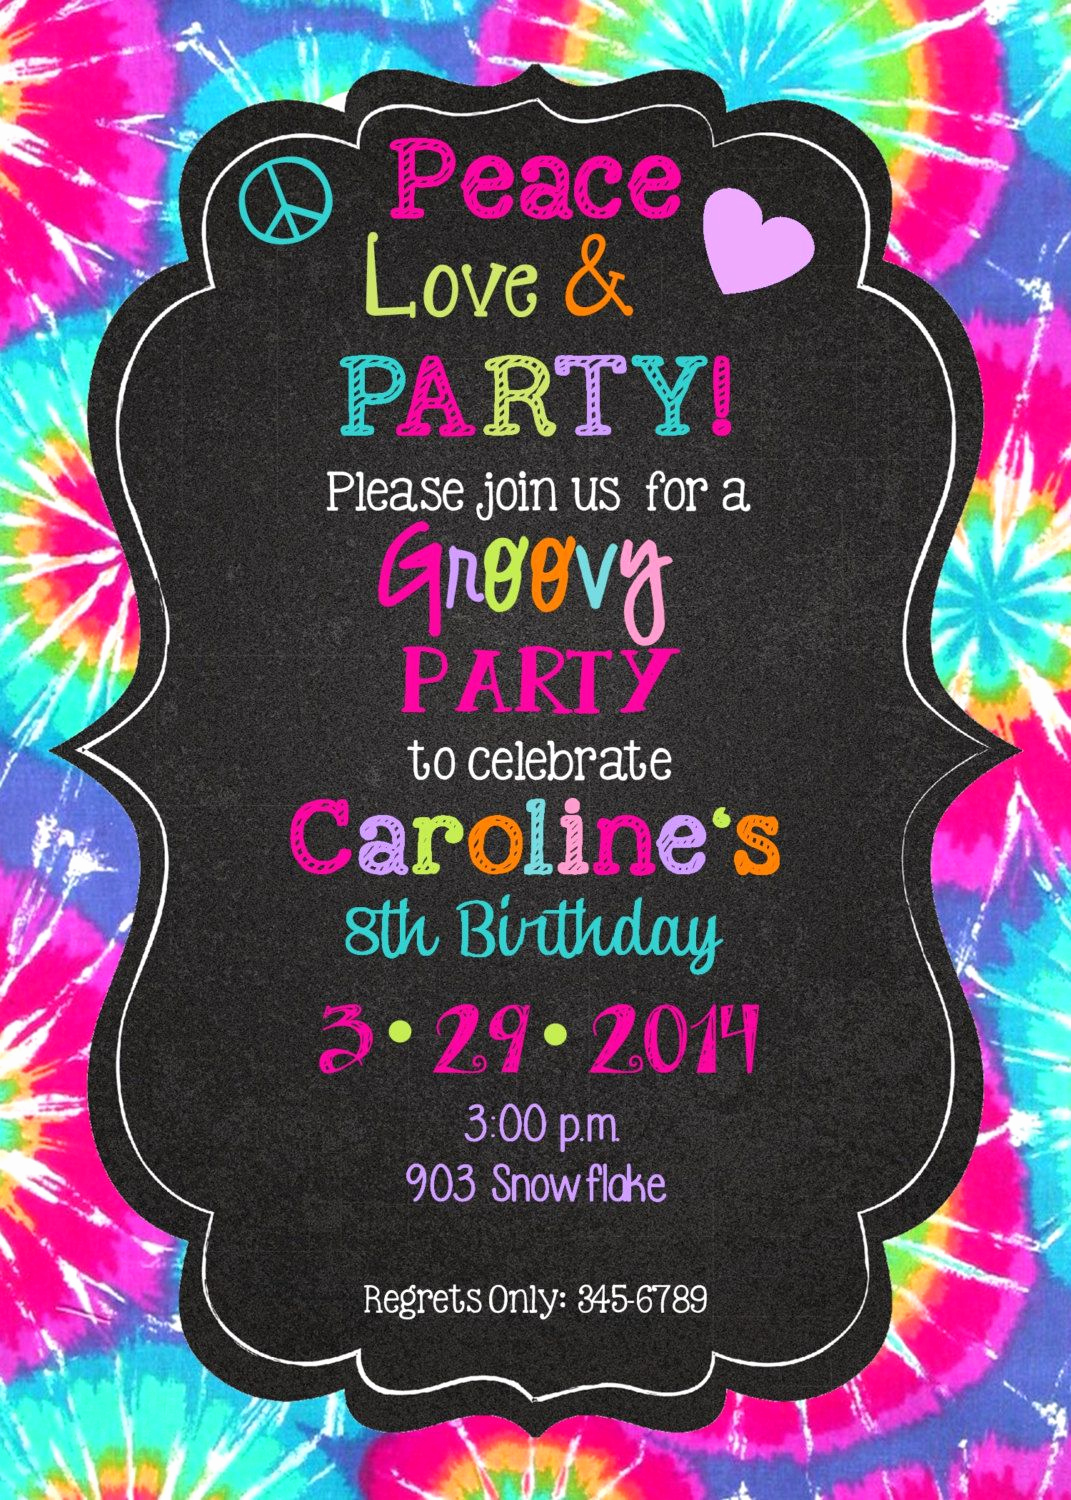 Tie Dye Invitation Template Free Lovely Peace Love Party Birthday Invitations Printable or Digital